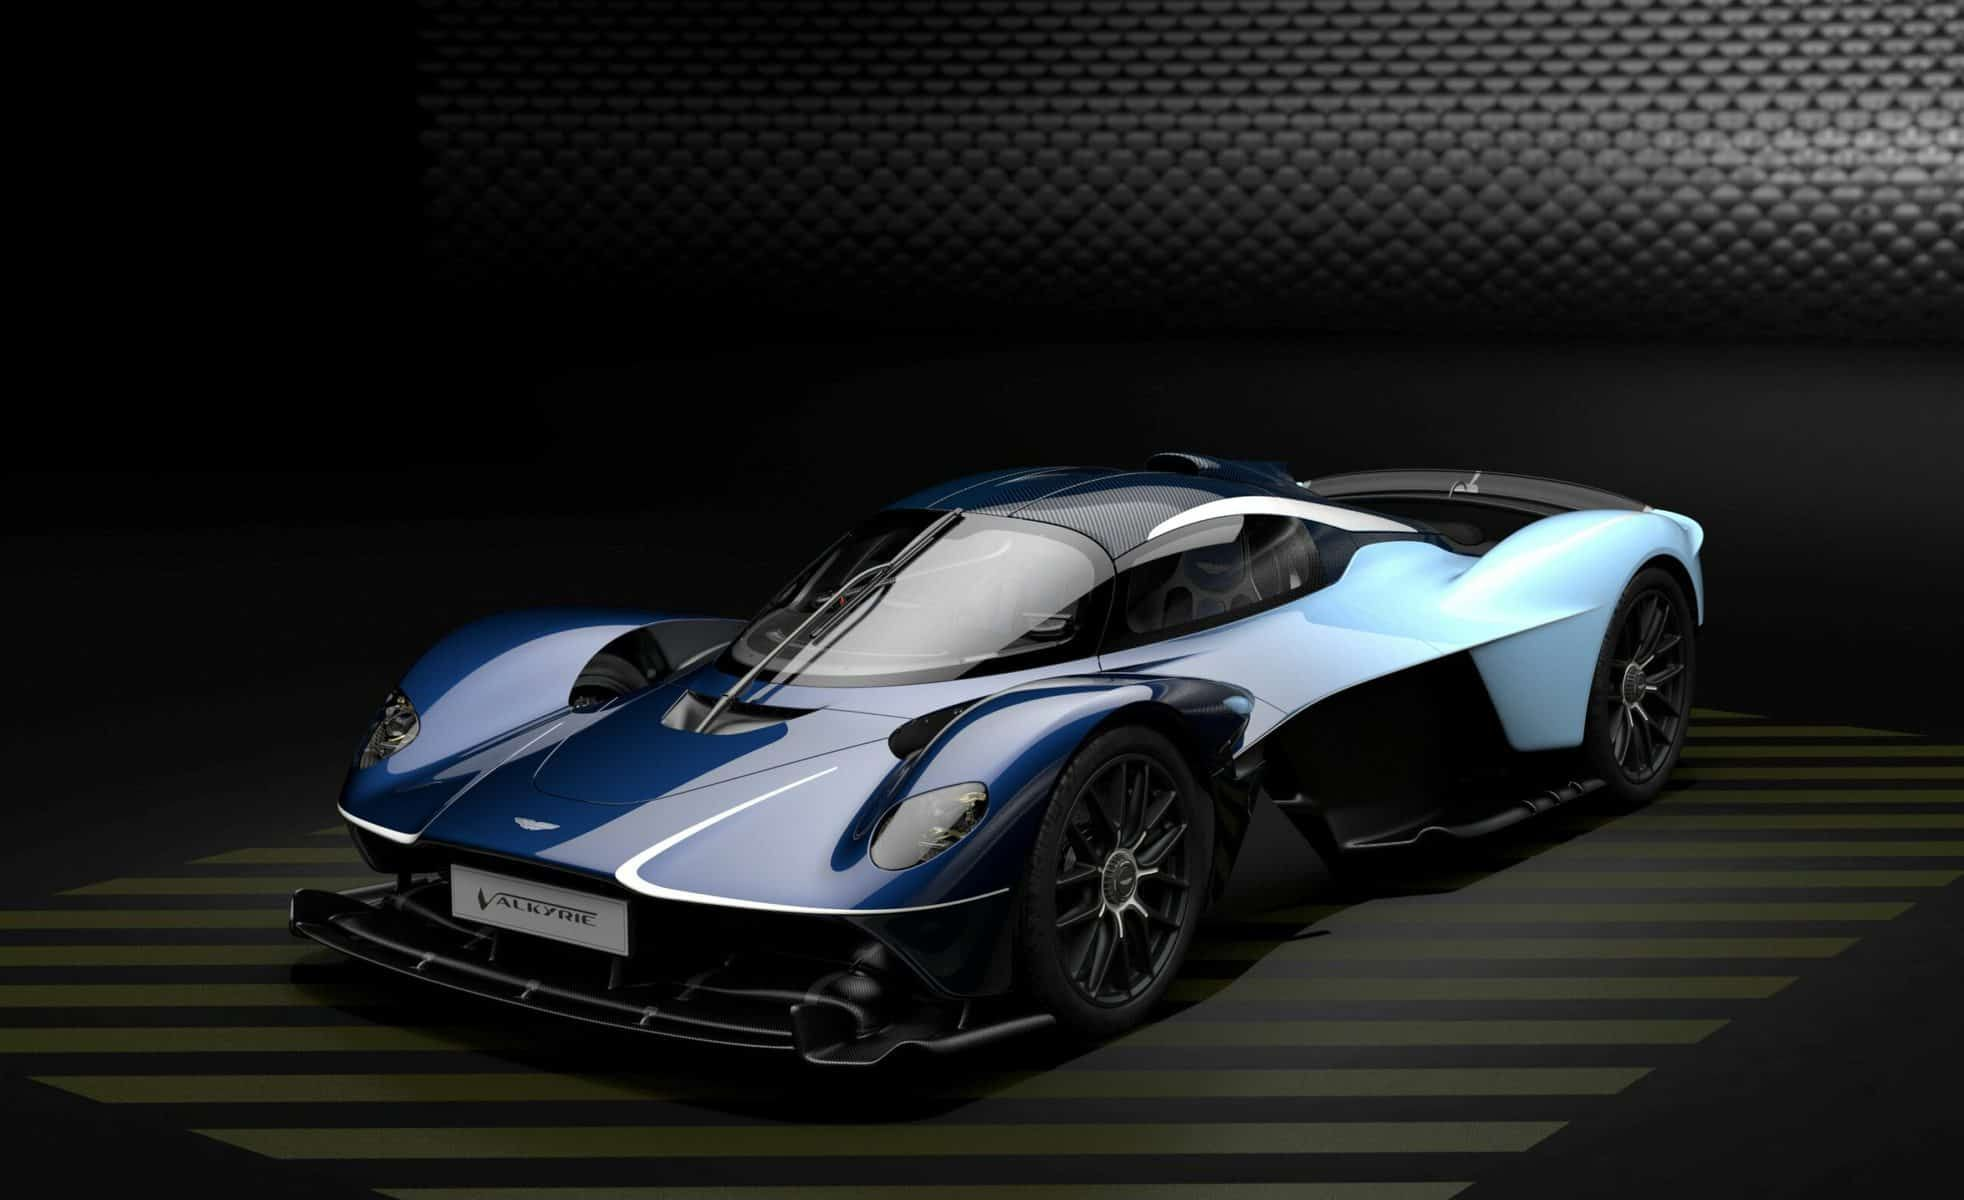 The Most Expensive Cars To Watch Out For In 2020 In 2020 Aston Martin Fastest Production Cars Valkyrie